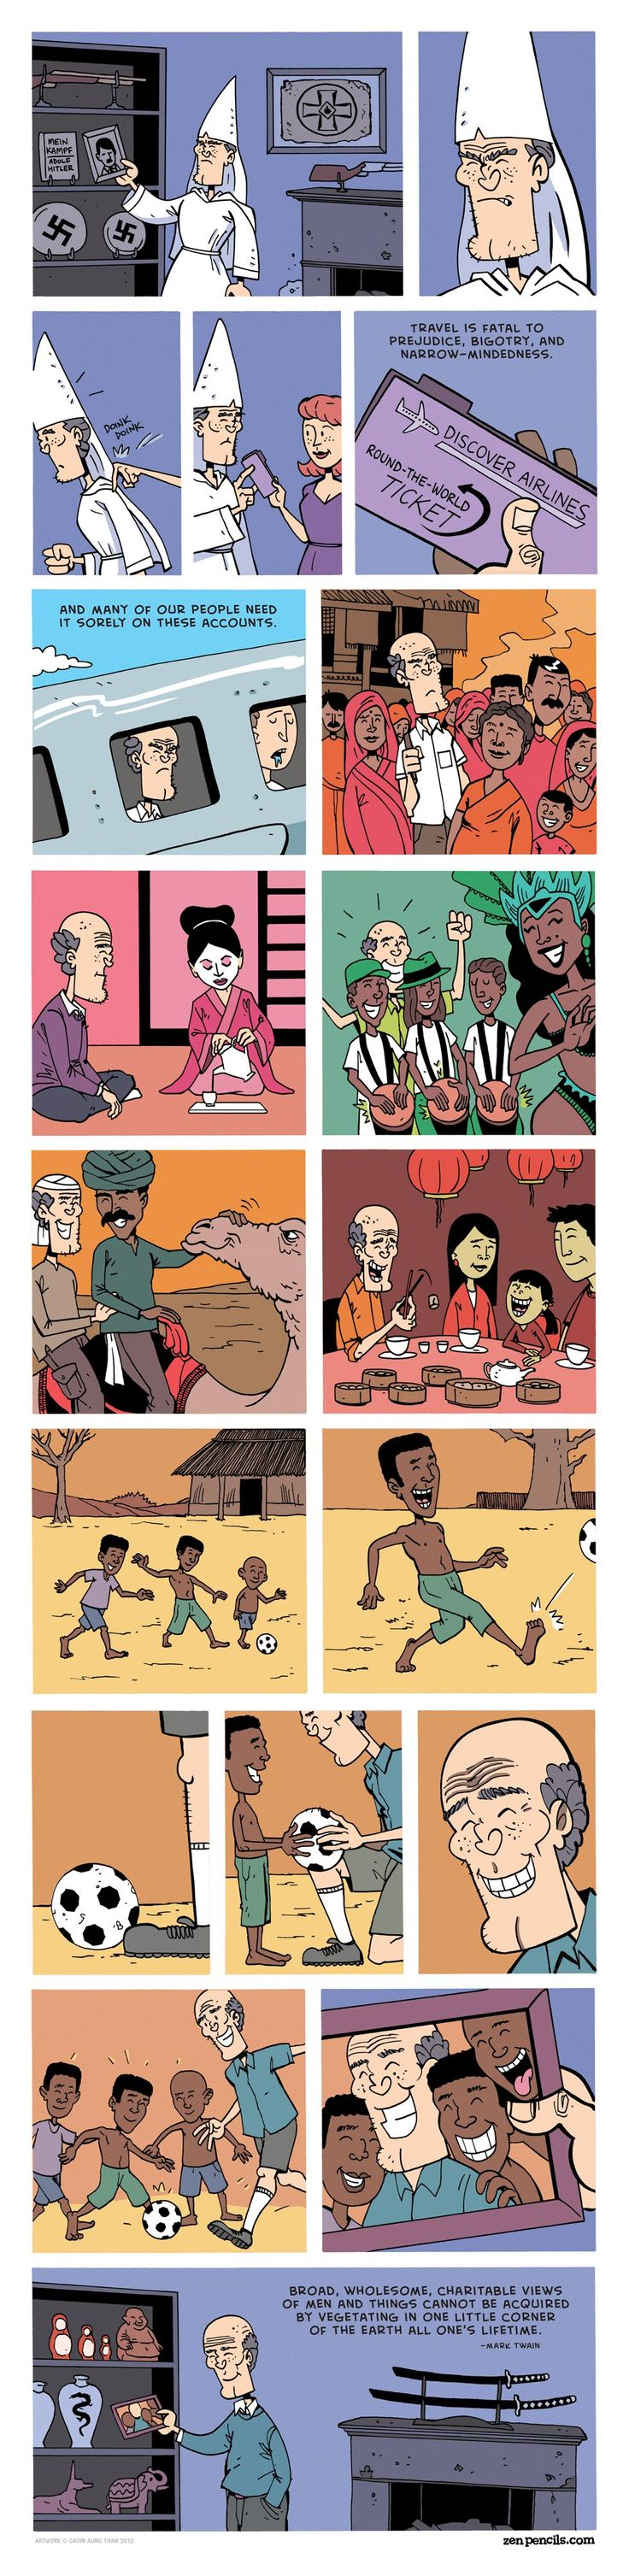 ZEN PENCILS - Cartoon quotes from inspirational folks